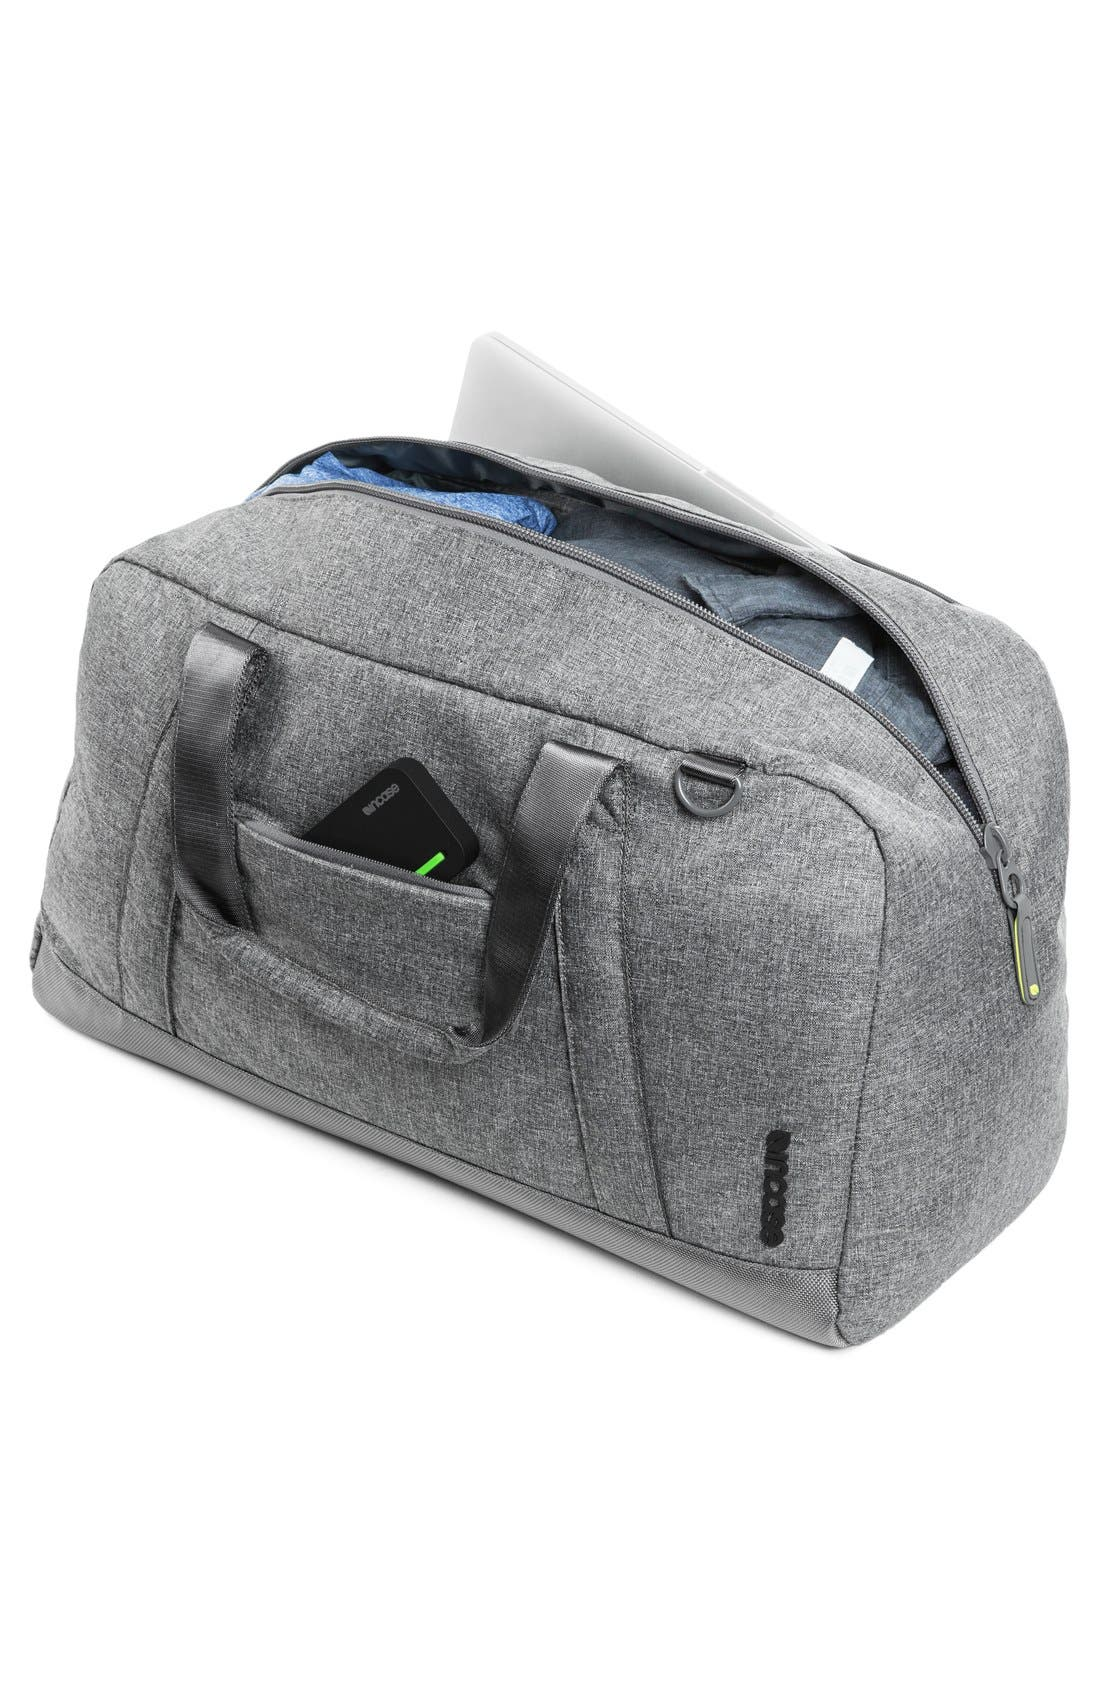 EO Duffel Bag,                             Alternate thumbnail 3, color,                             Heather Grey